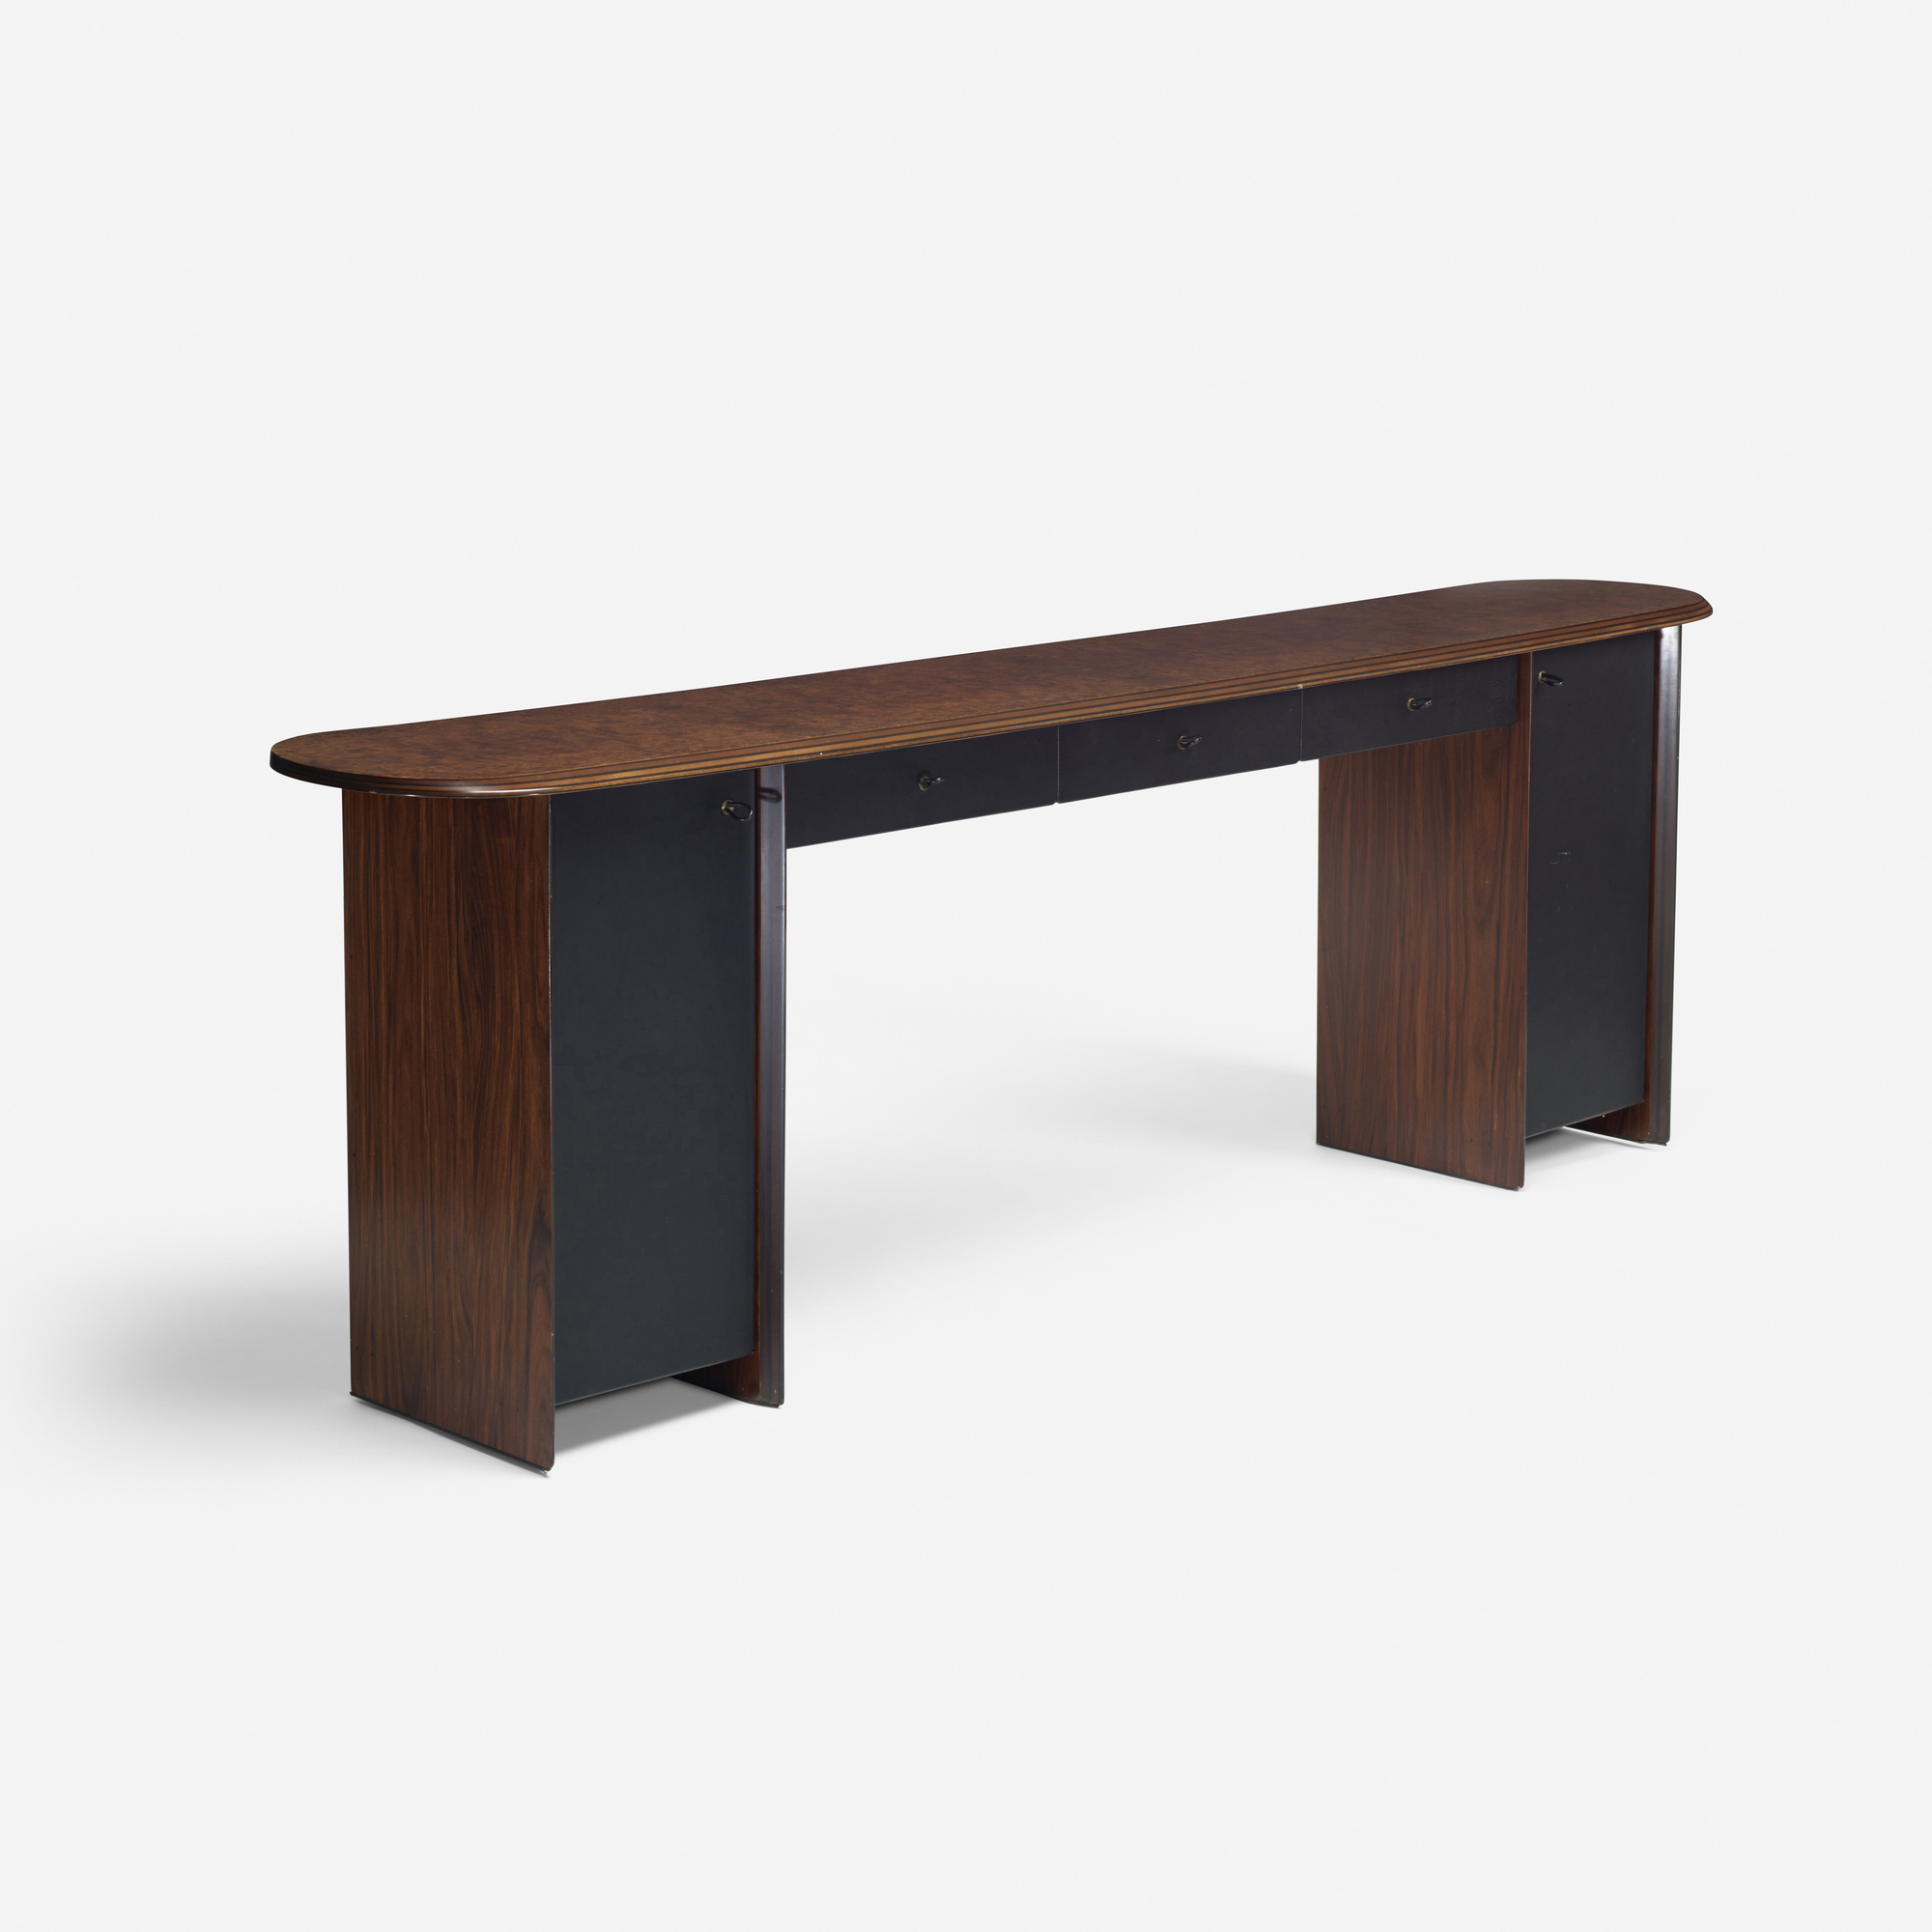 716: Afra and Tobia Scarpa / Artona console (1 of 3)